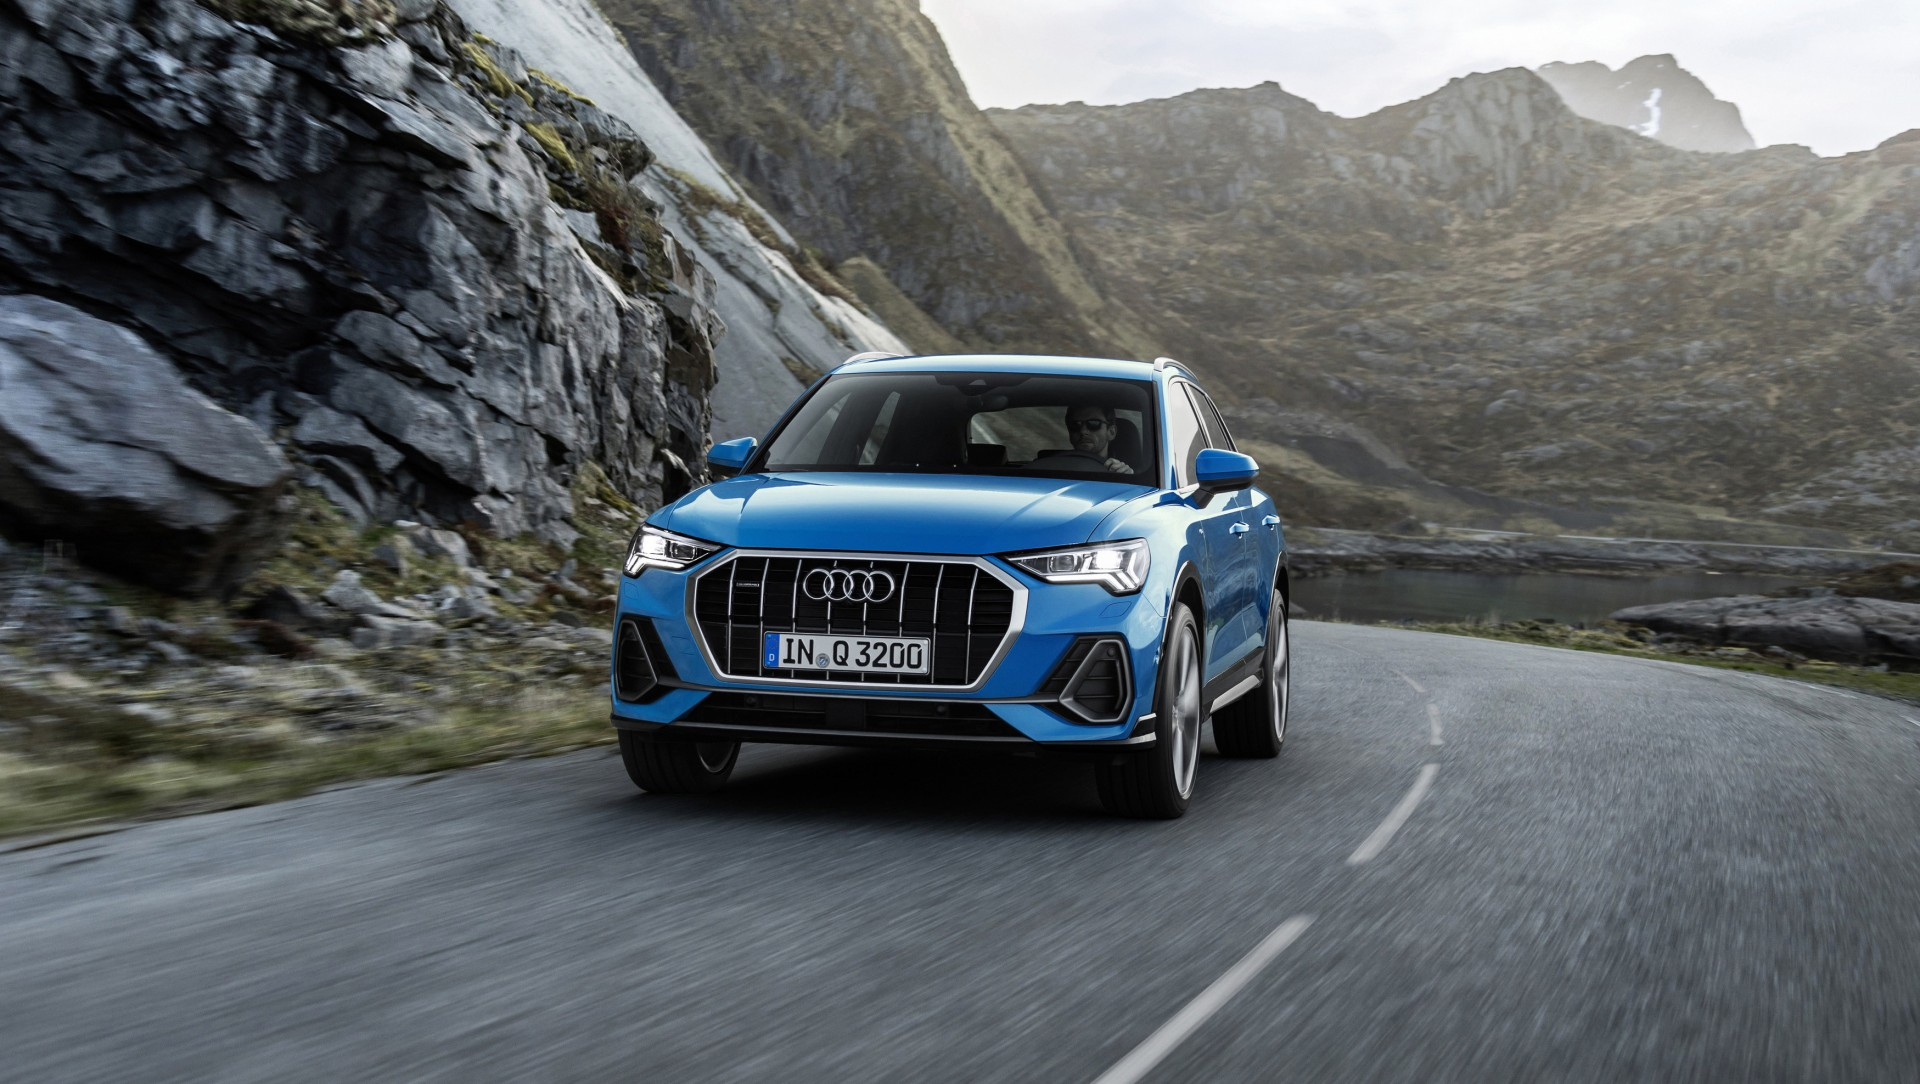 2.0 TFSI van Audi wint International Engine of the Year award